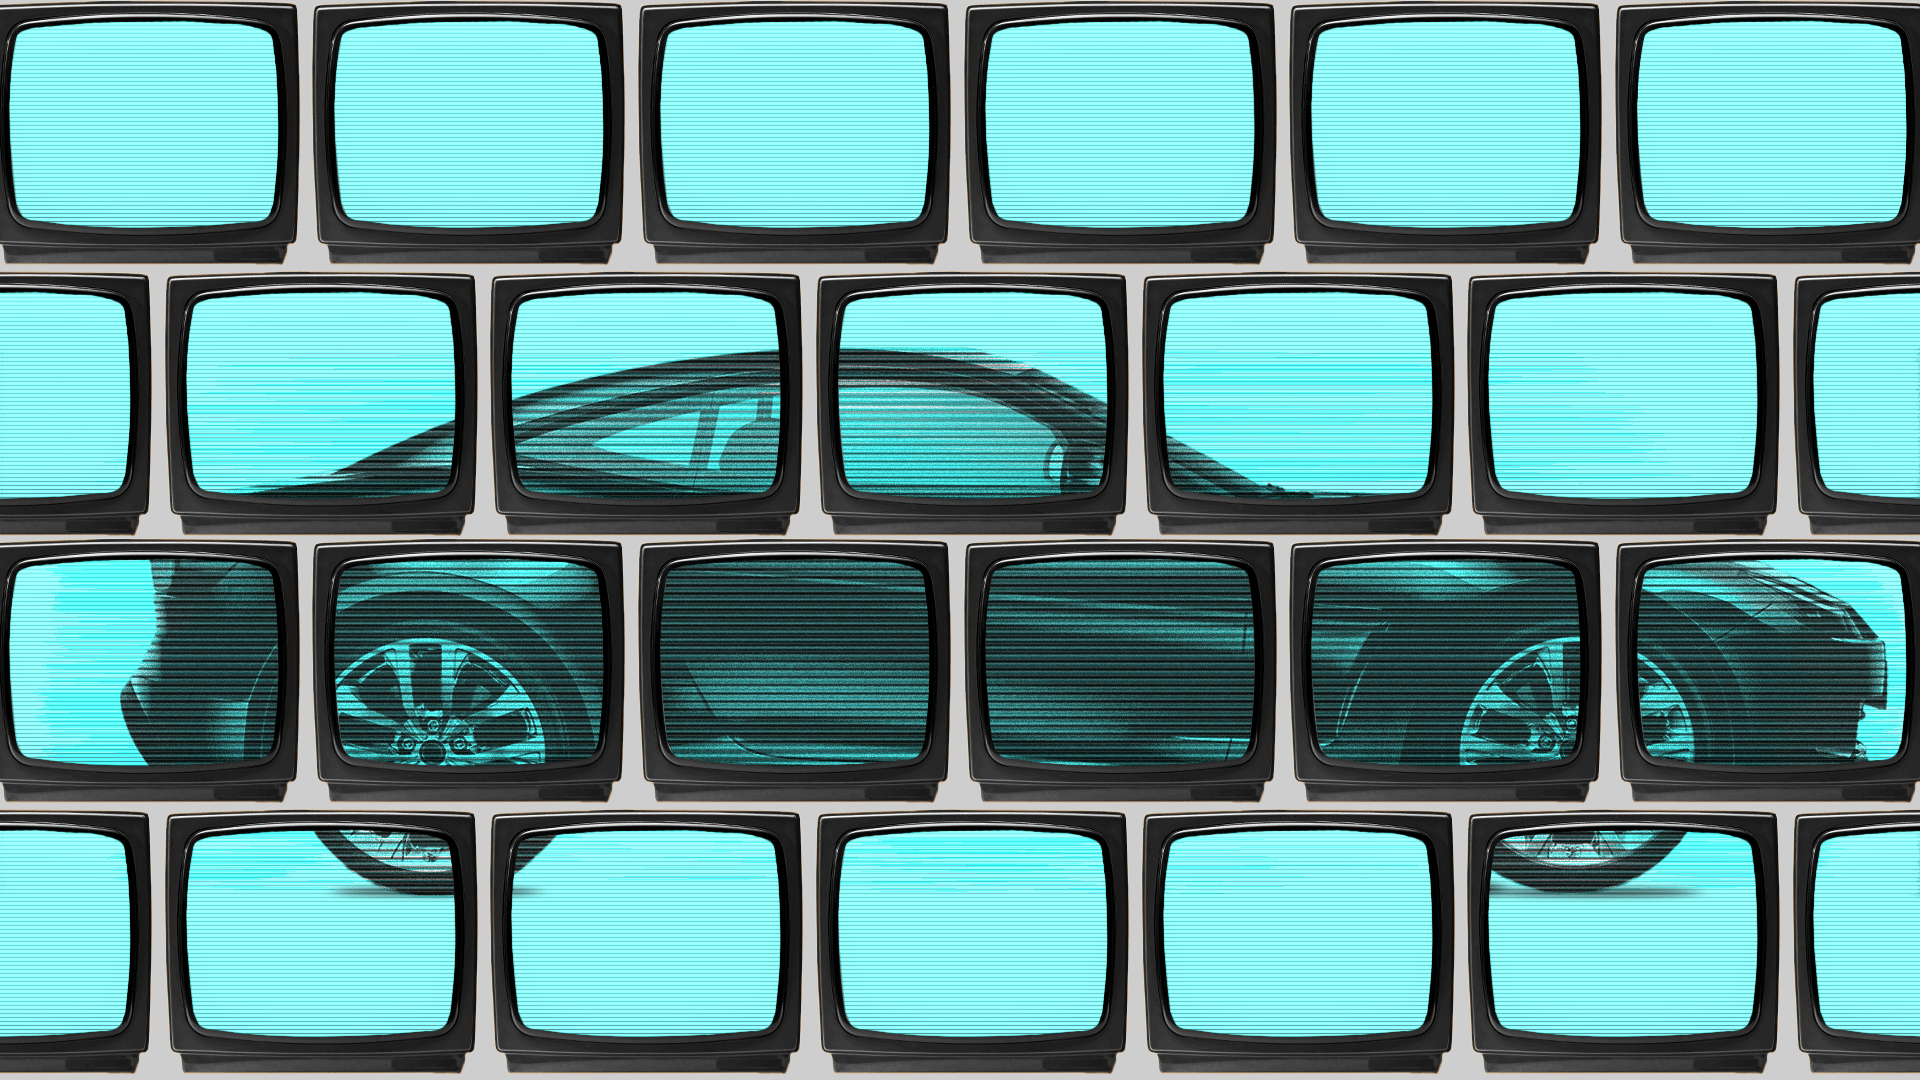 Illustration of a wall of televisions showing footage of a car